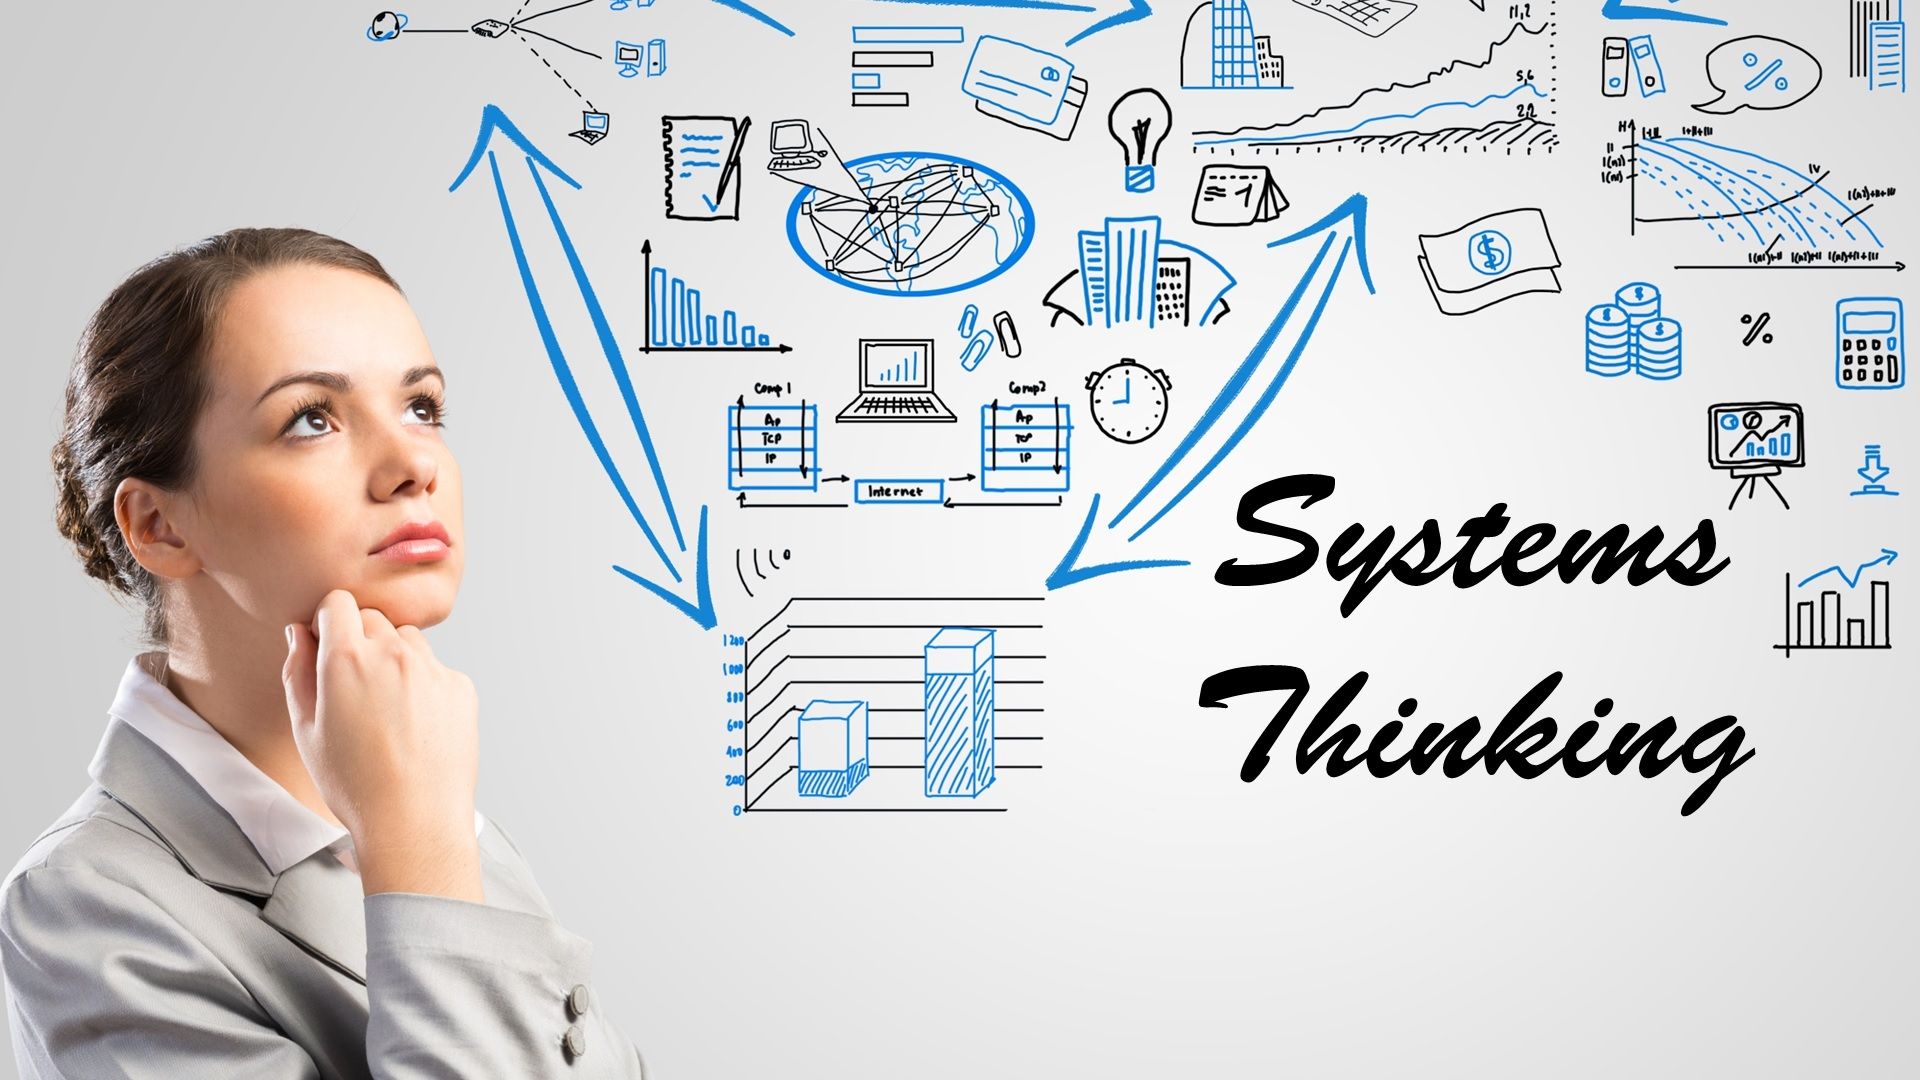 systems_thinking_laws_image_facebook